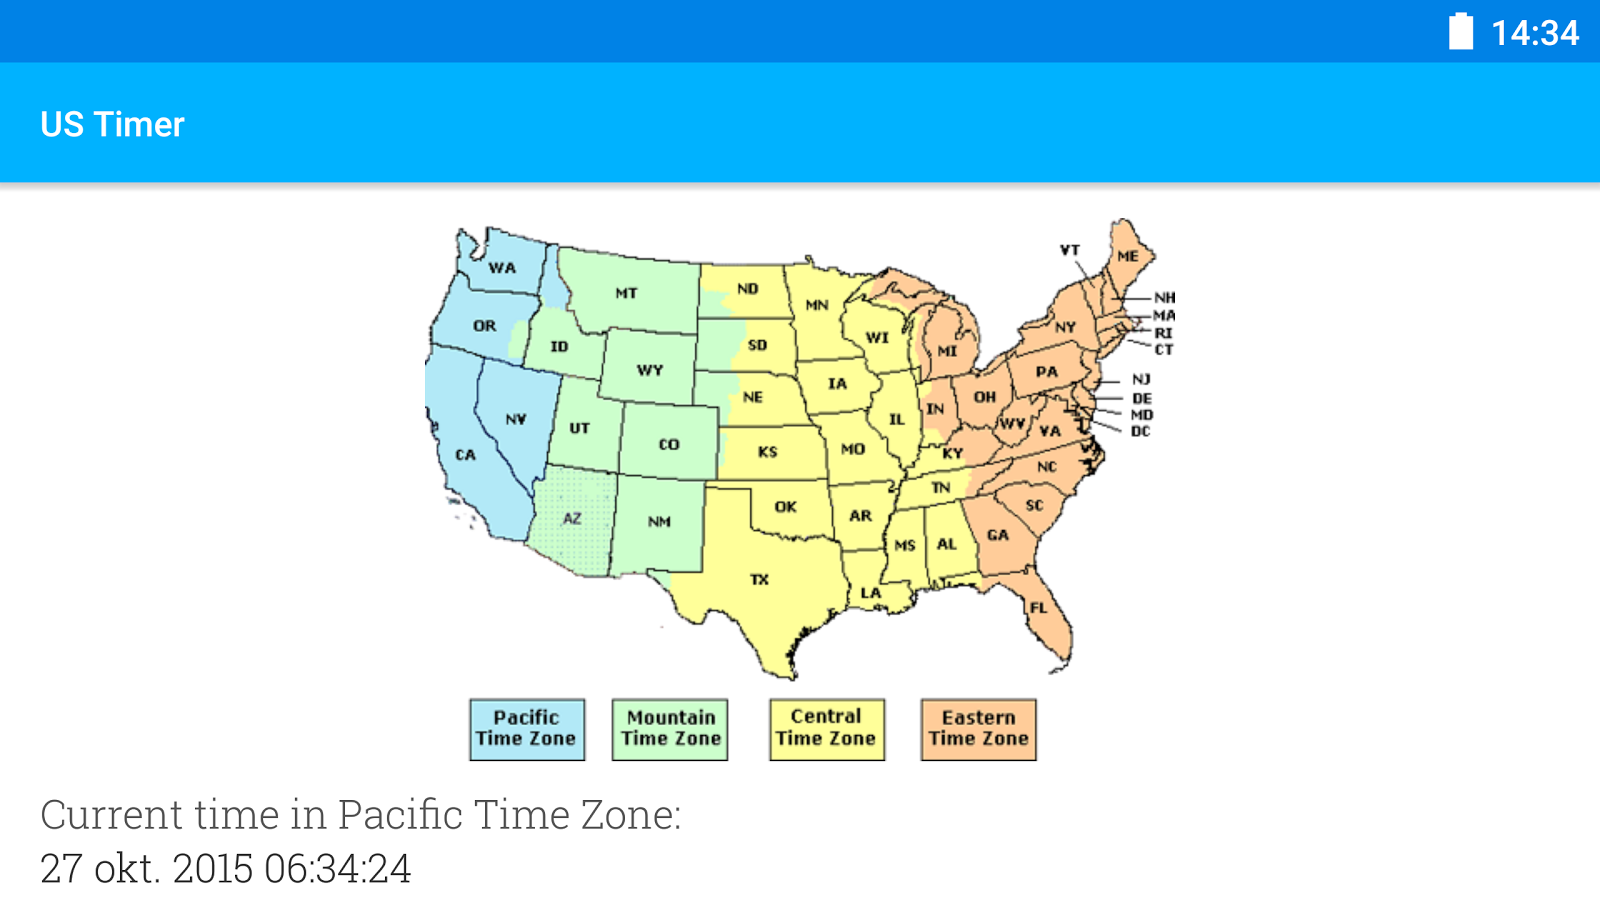 Current Local Time In Virginia United States List Of US States By - Current time zone map of the us